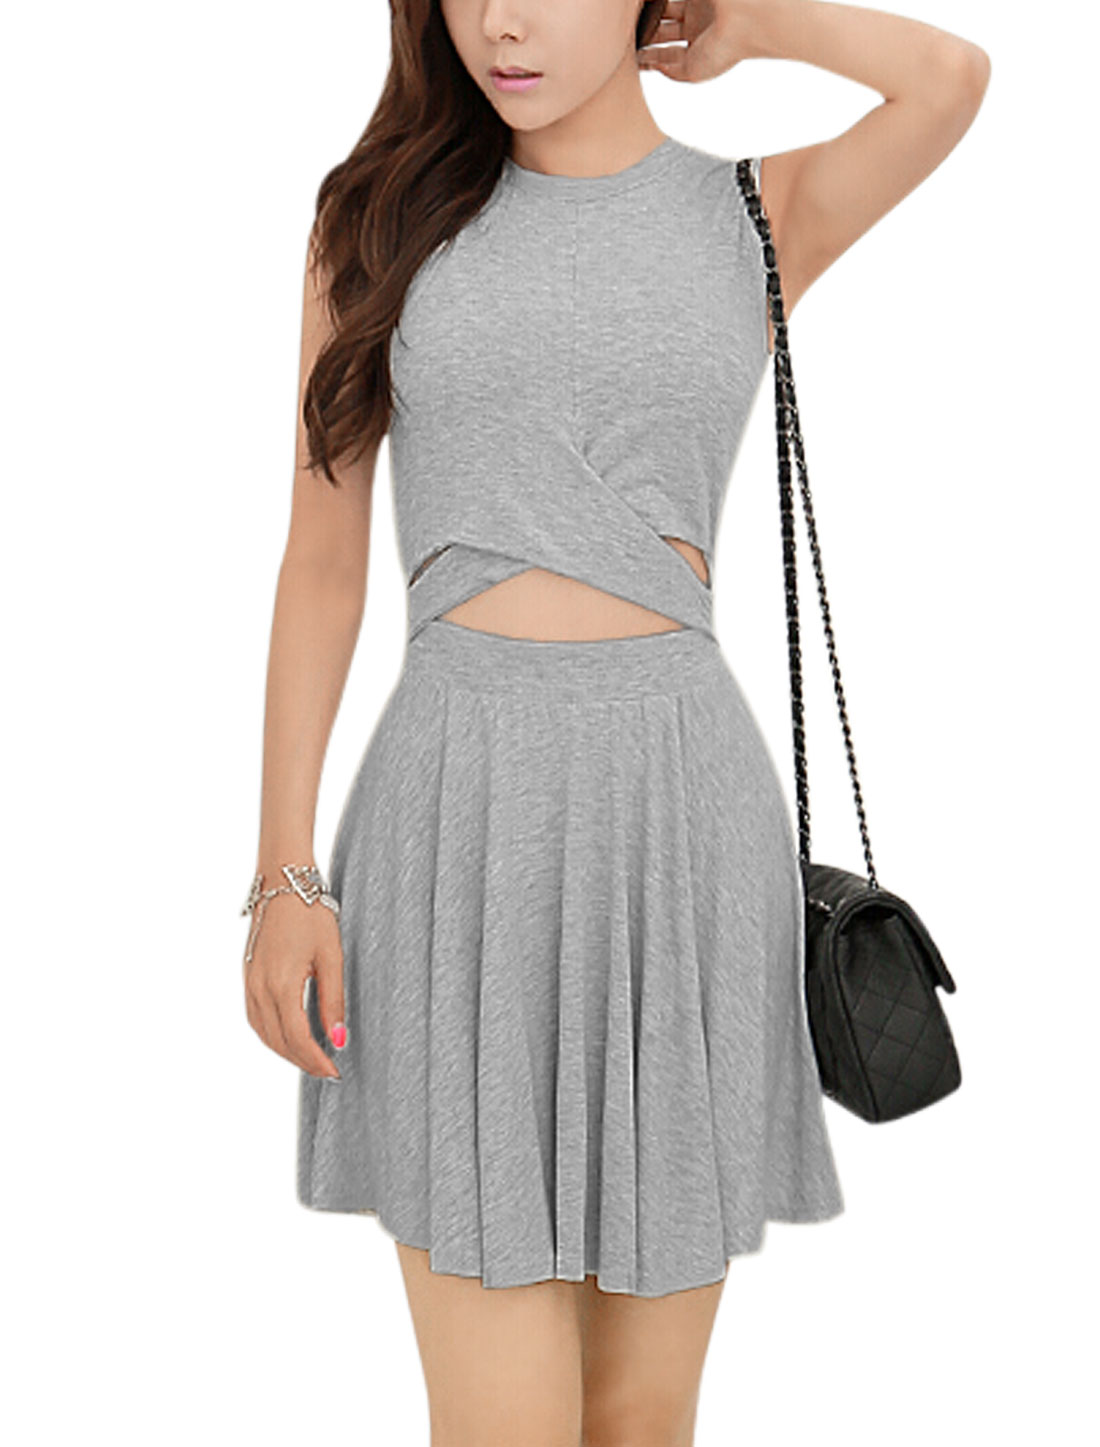 Women Round Neck Sleeveless Crossover Design A Line Dress Light Gray S